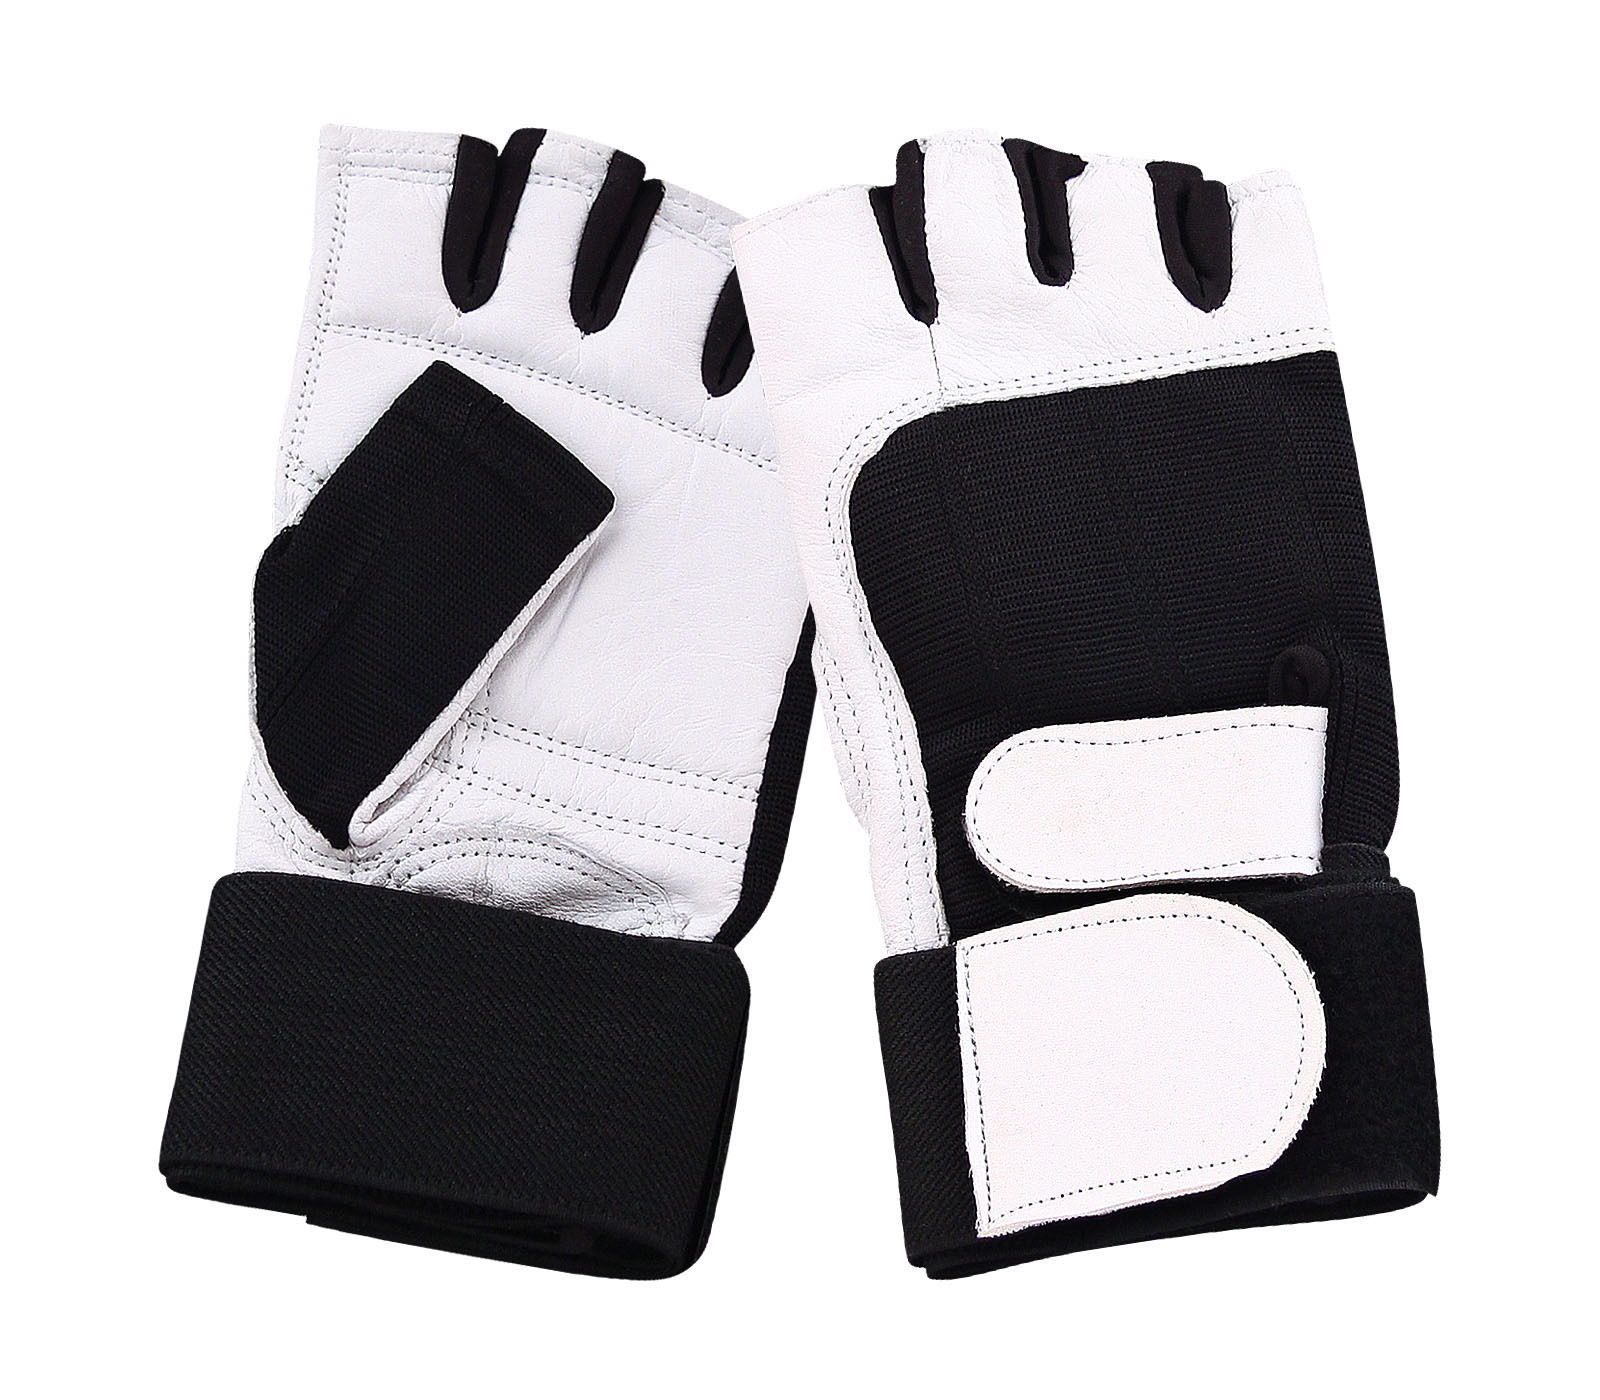 Driving gloves yahoo answers - You Might Also Like Leather Padded Long Strap Gloves Driving